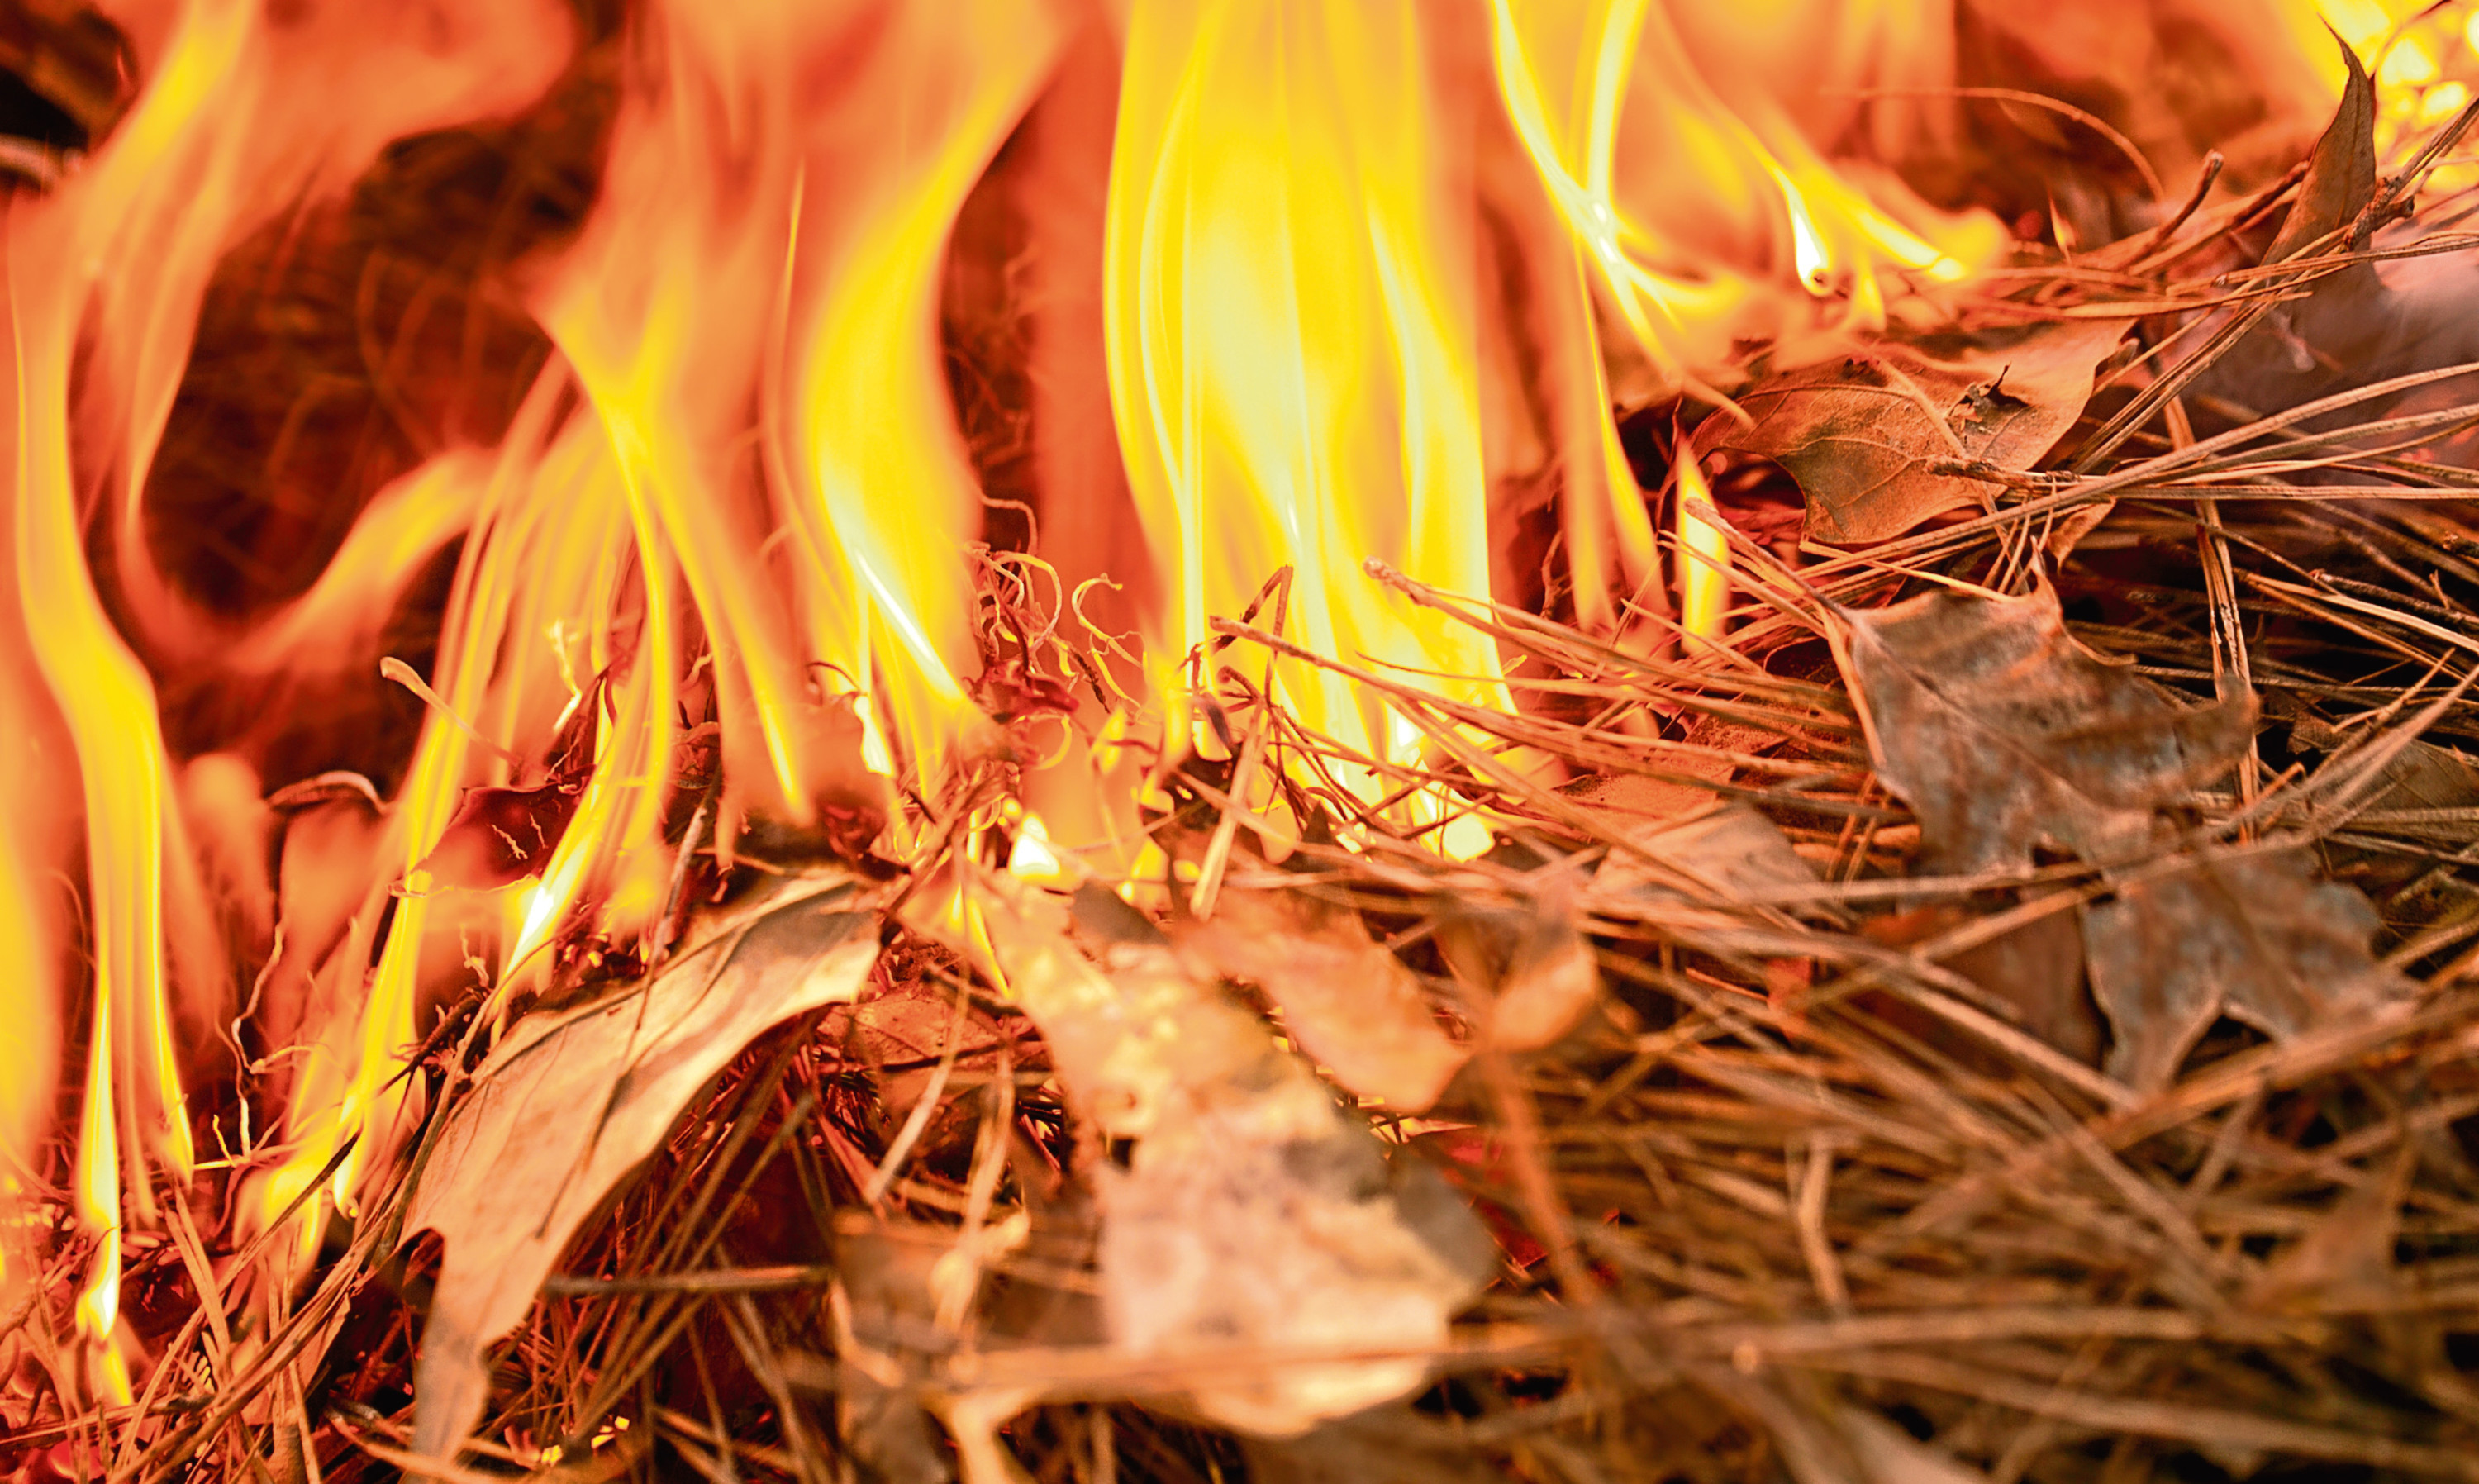 Leaves burning sparked a whole series of nostalgic thoughts for Lucy Penman. Fire Burning through Forest Floor